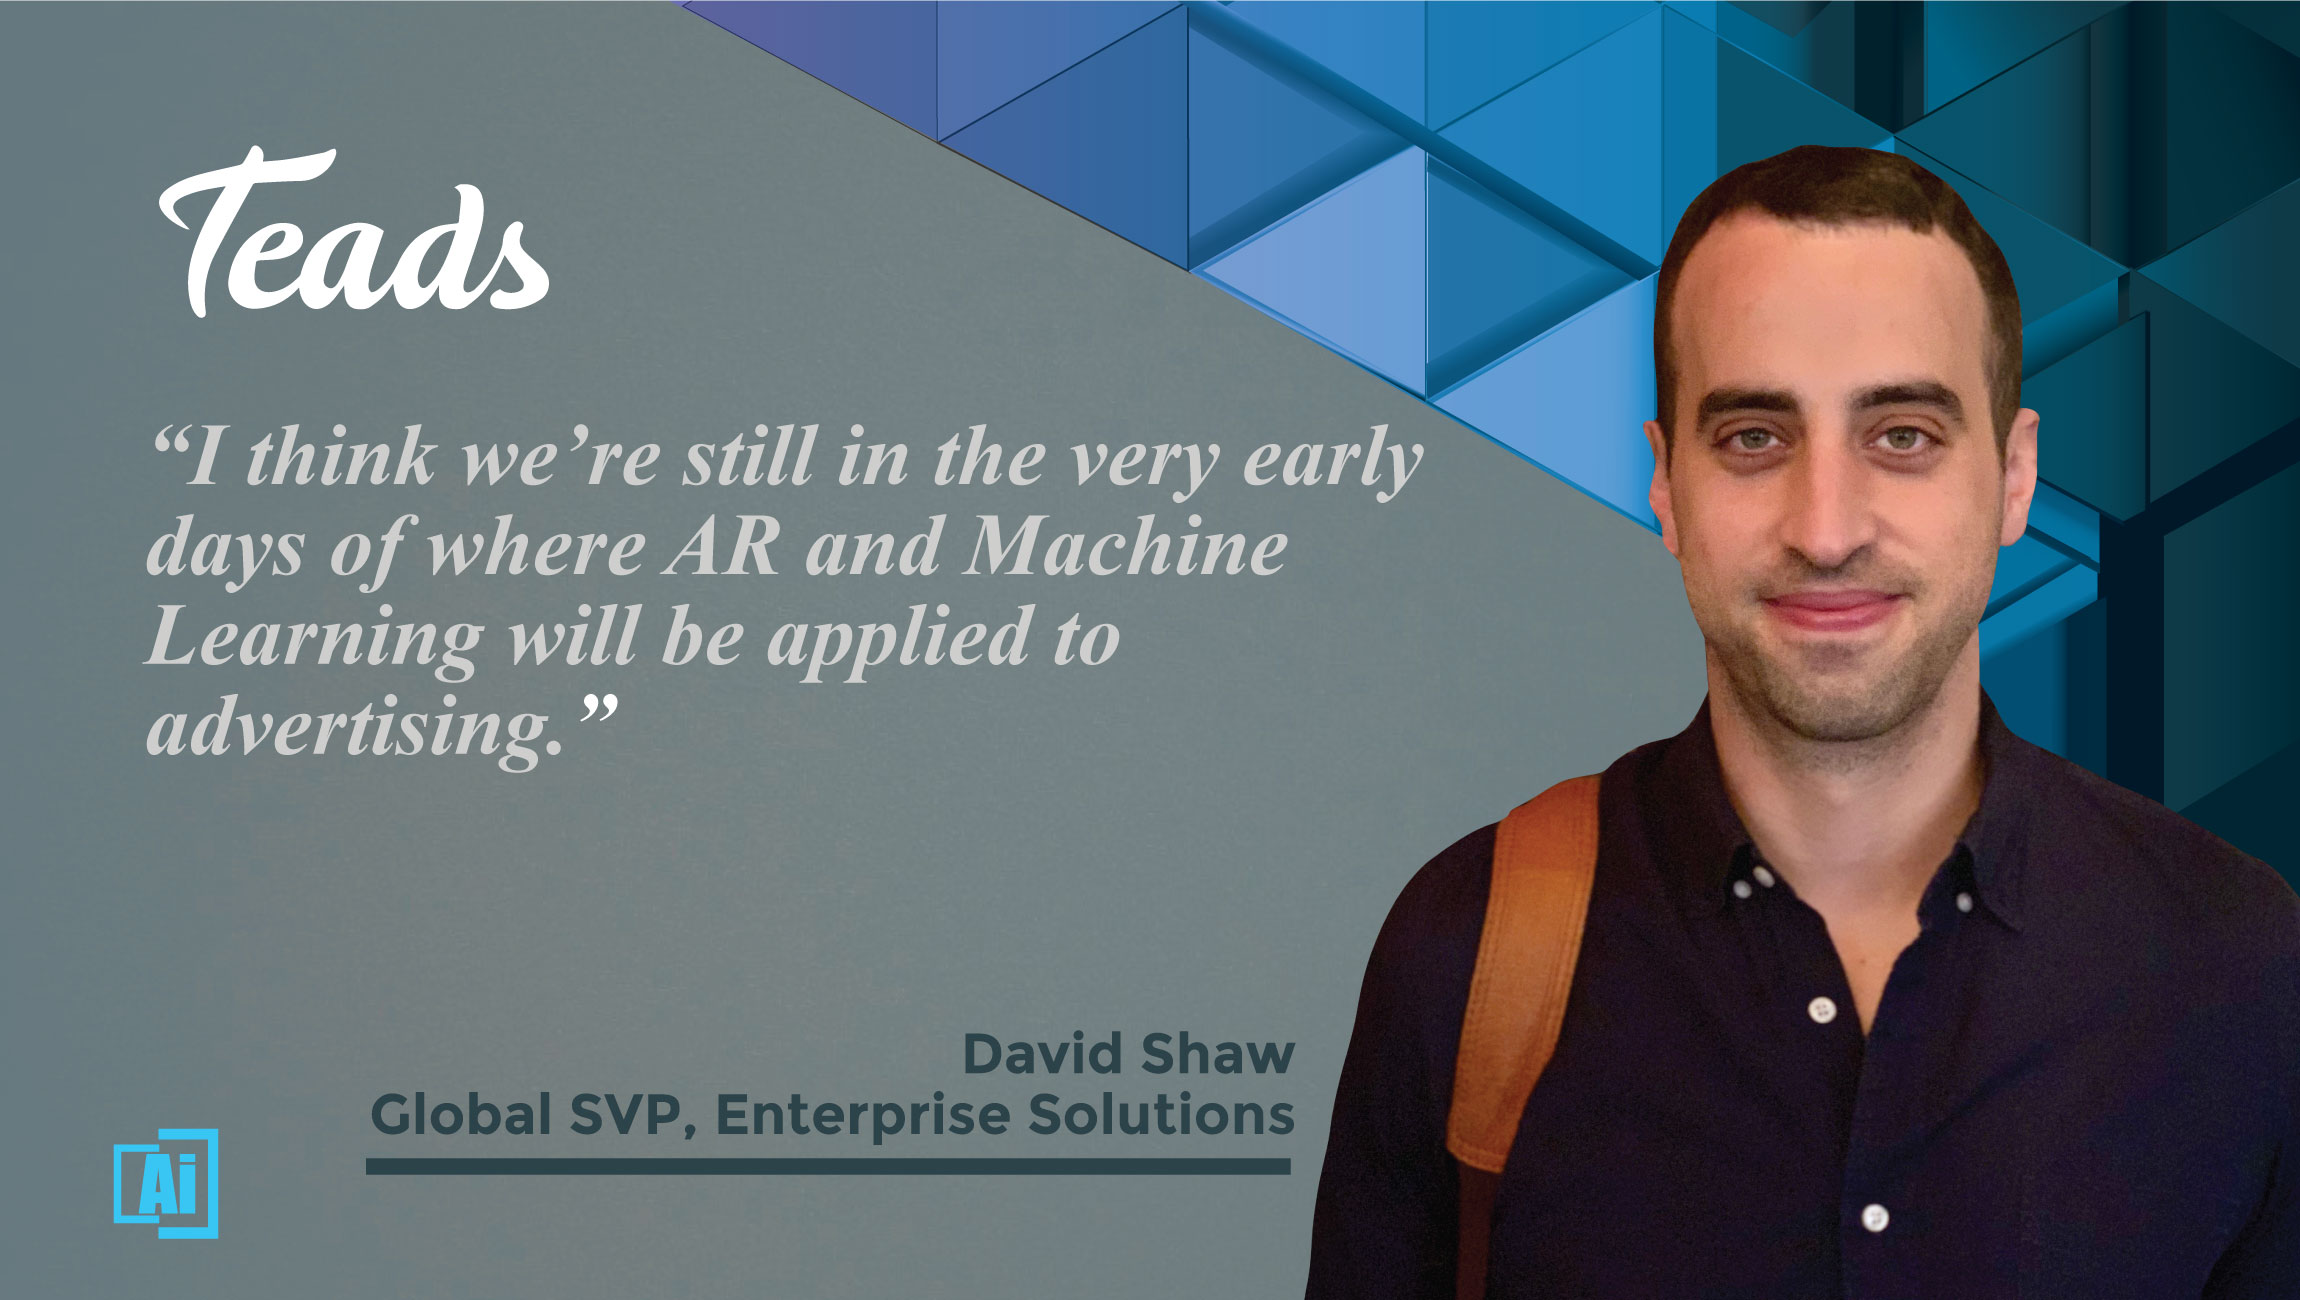 AiThority Interview with David Shaw, Global SVP, Enterprise Solutions at Teads